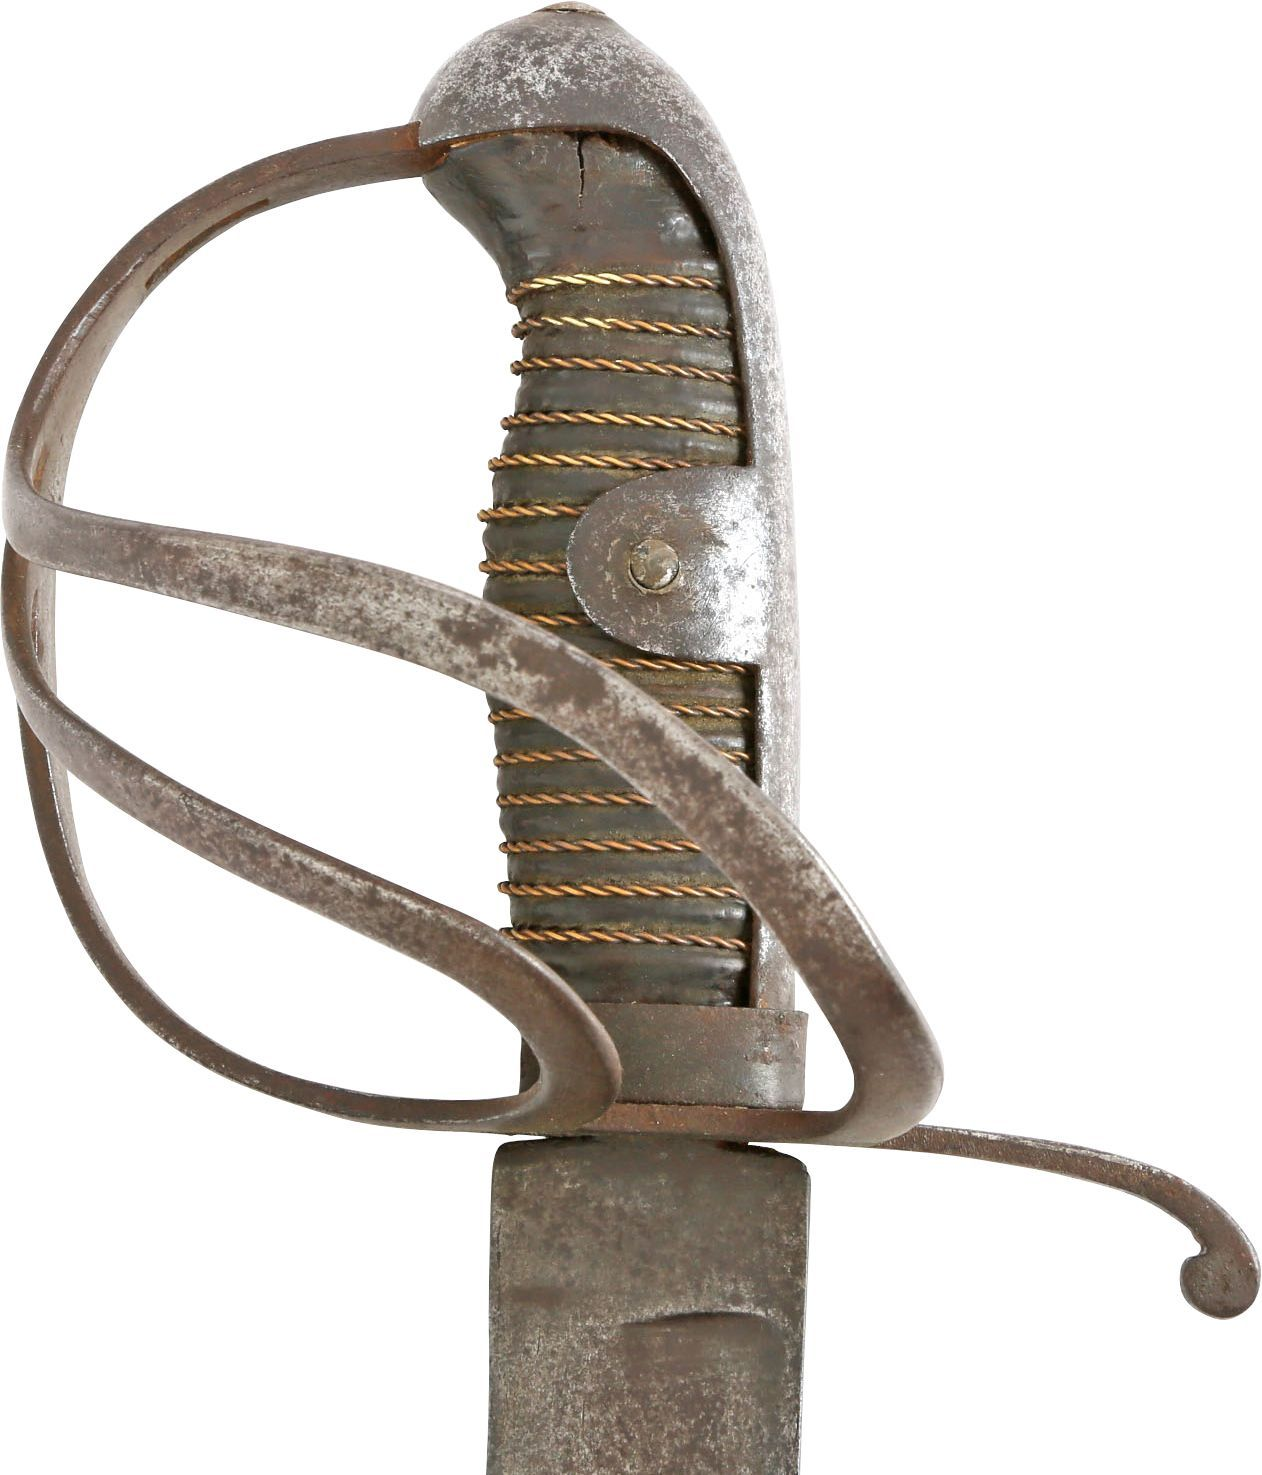 EUROPEAN HORSEMAN'S SWORD C.1785-95 - Fagan Arms